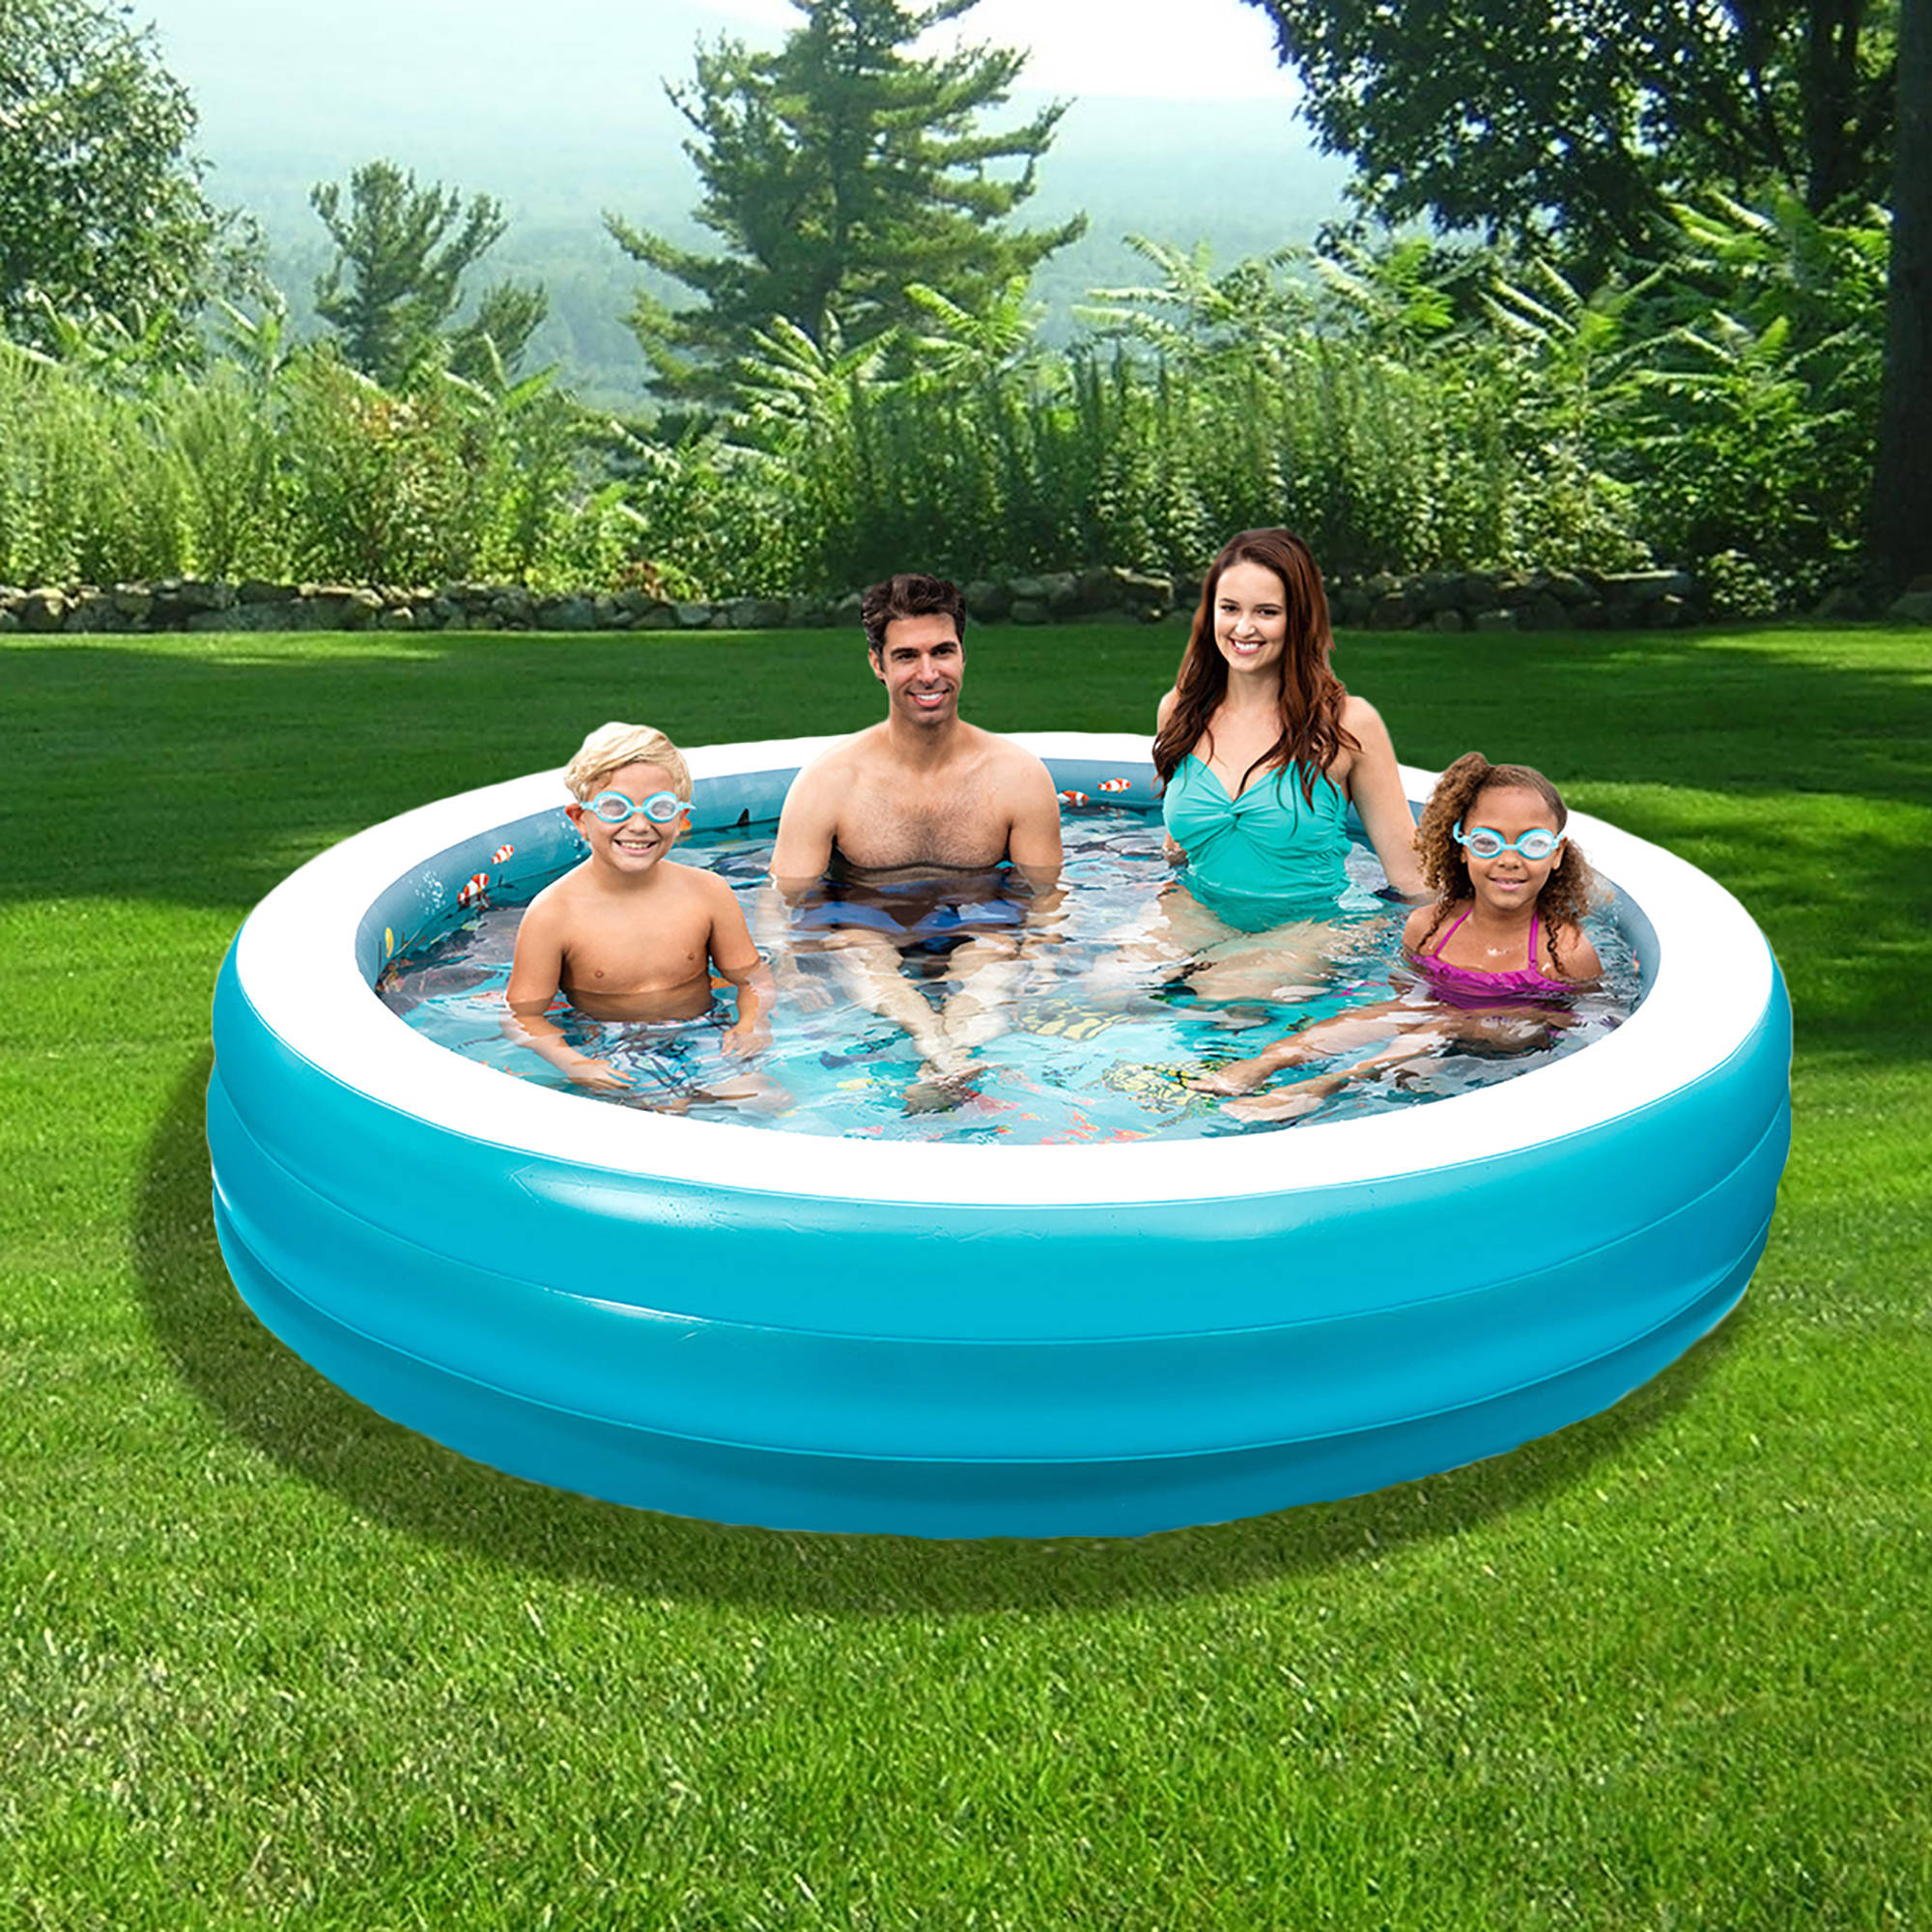 3D Inflatable 7.5' Round Family Pool